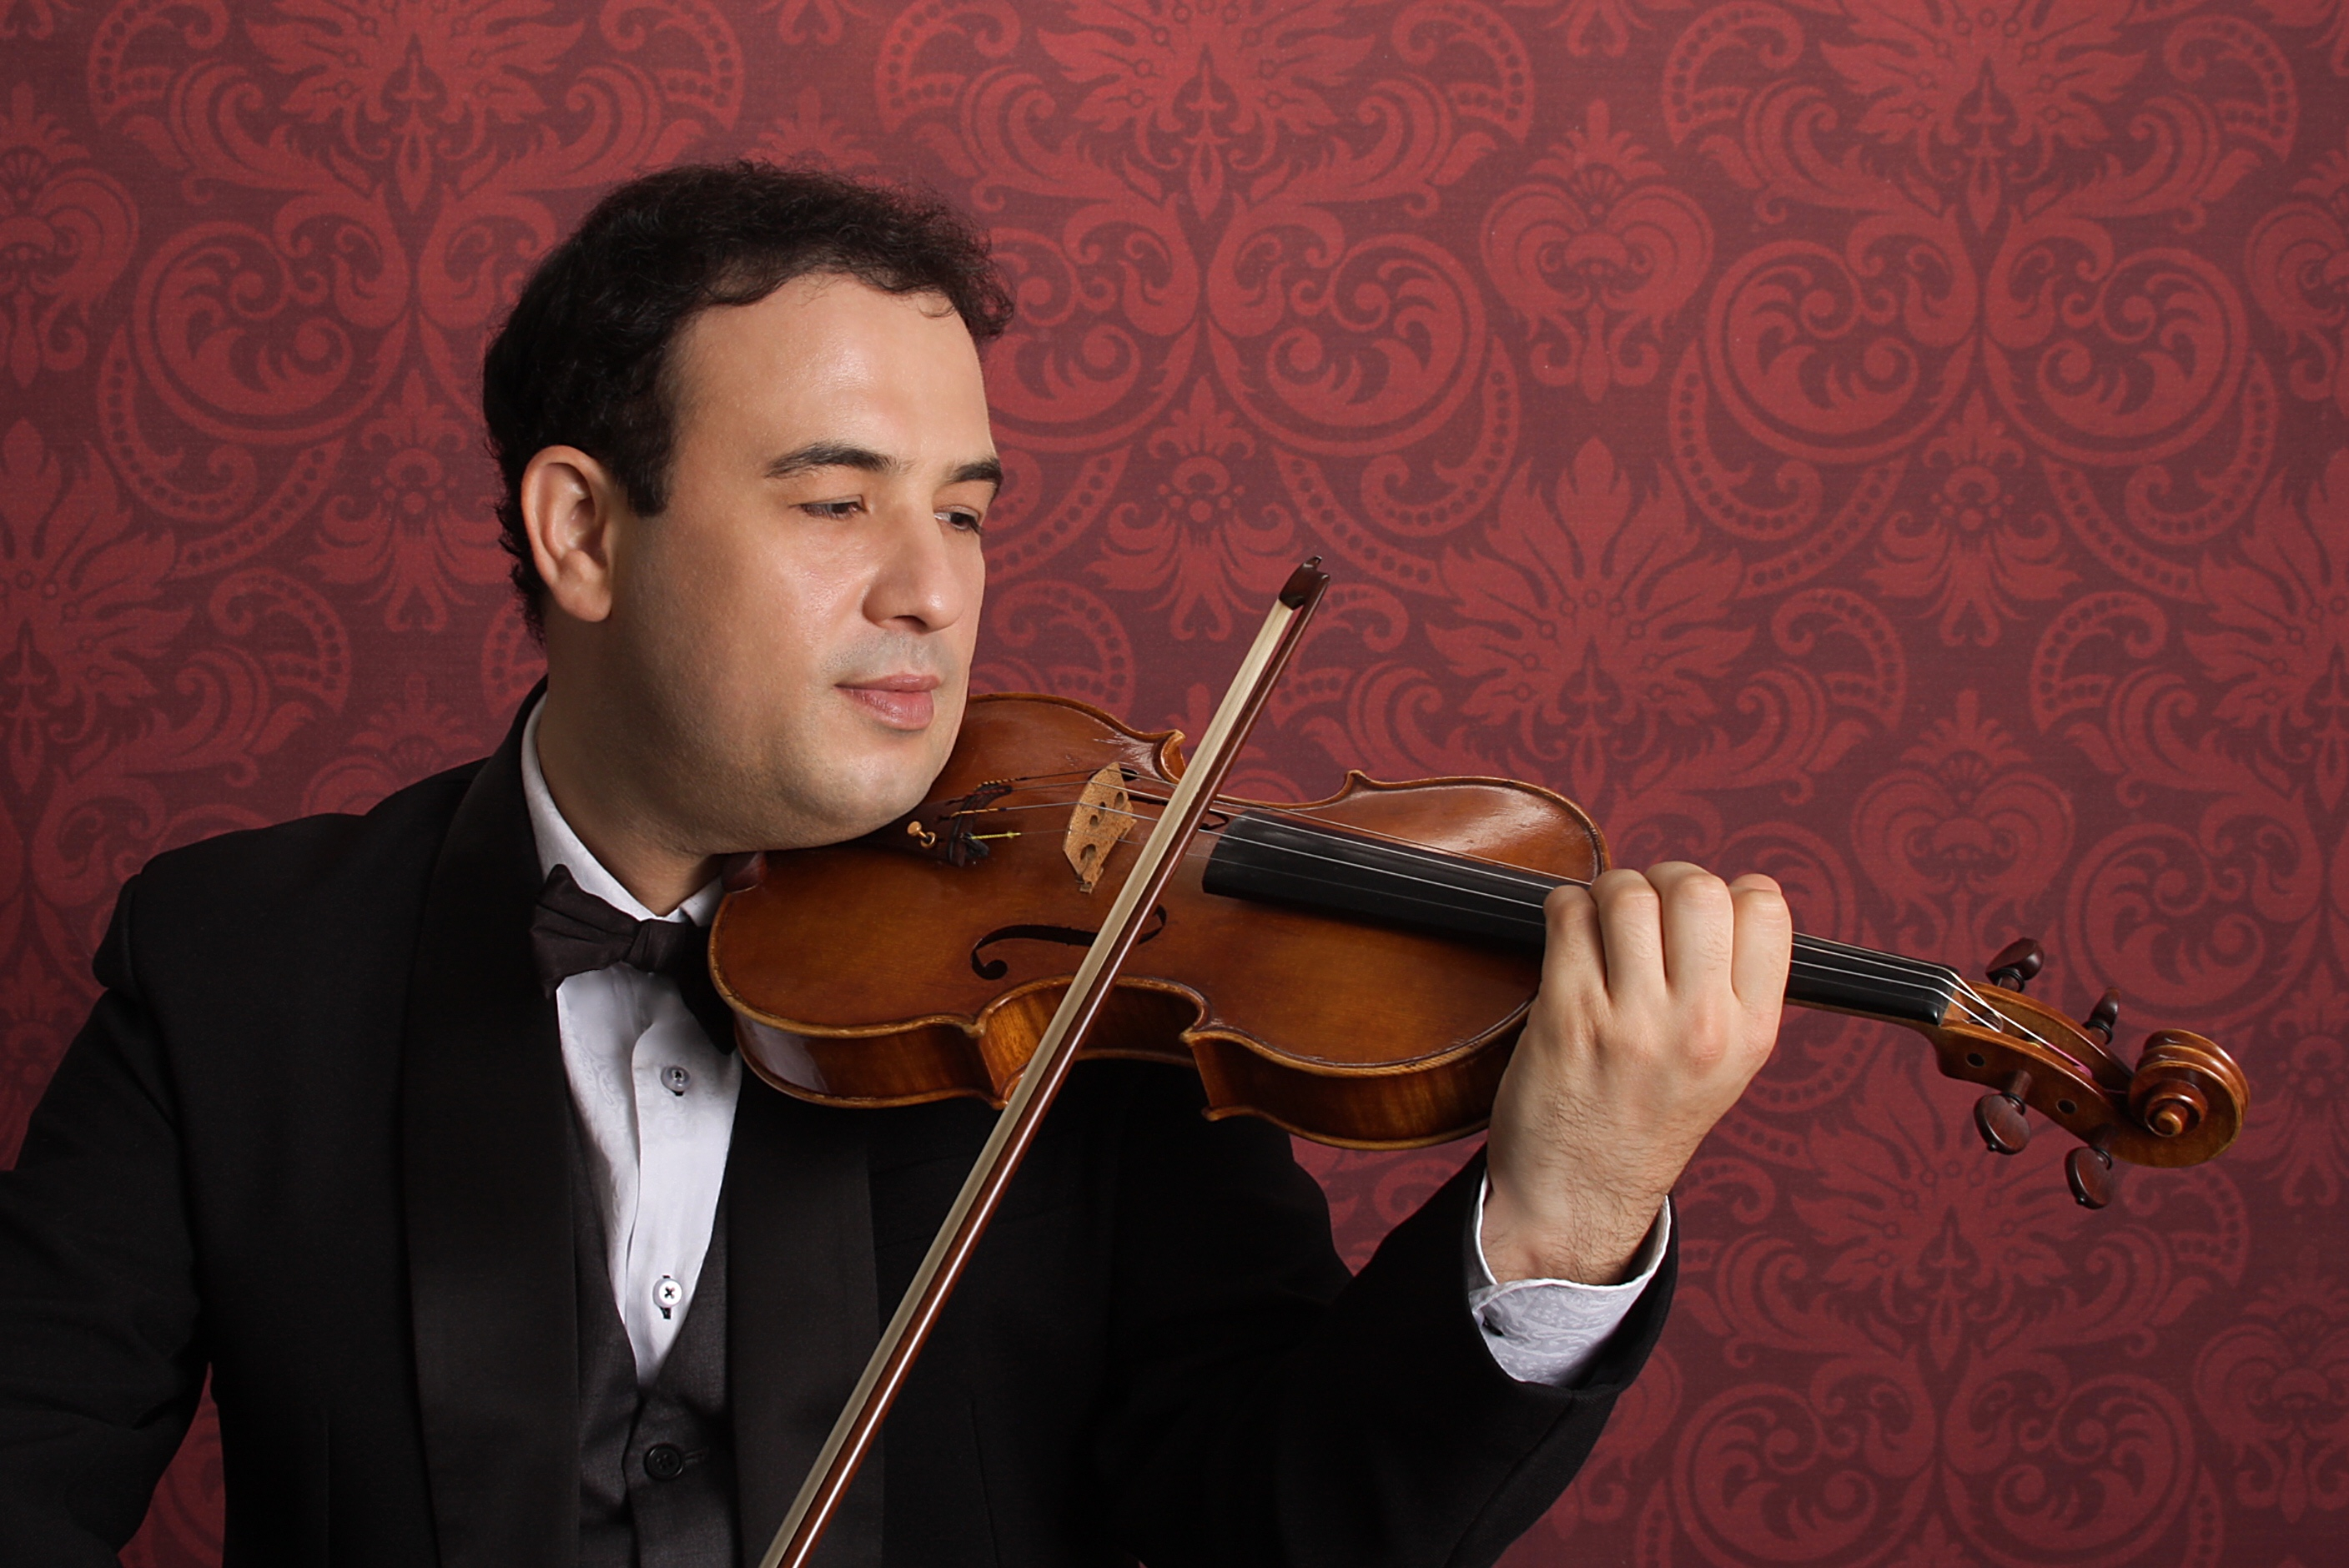 Jonathan Leviim will present Violin with LoveL'CHAIM MAGAZINE